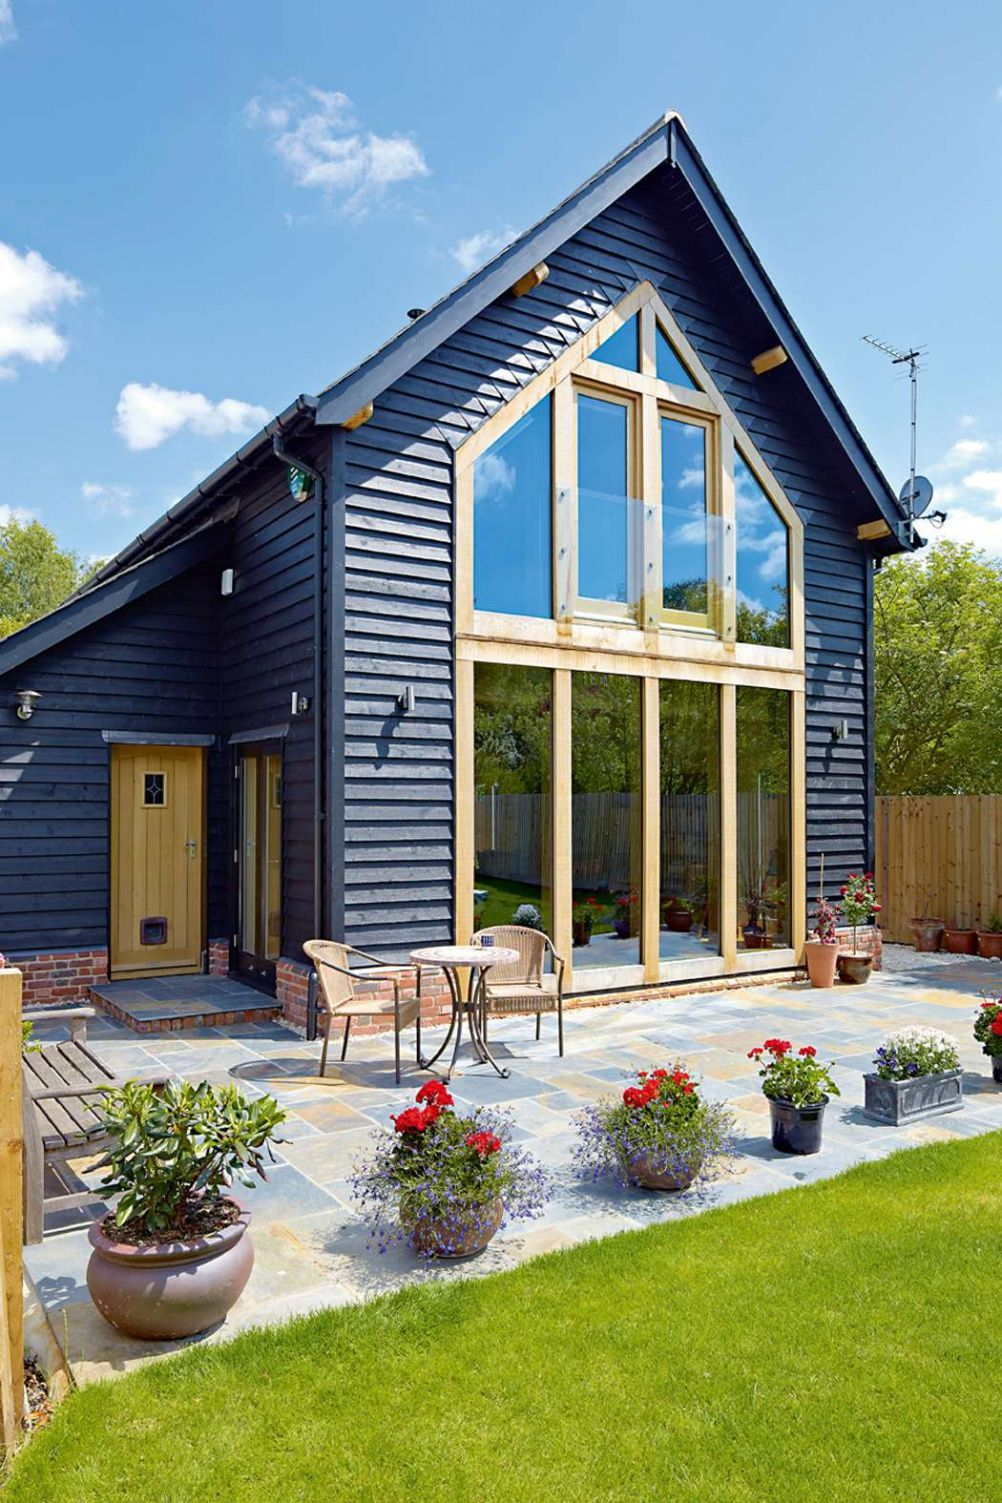 A picturesque, oak frame barnstyle selfbuild home in